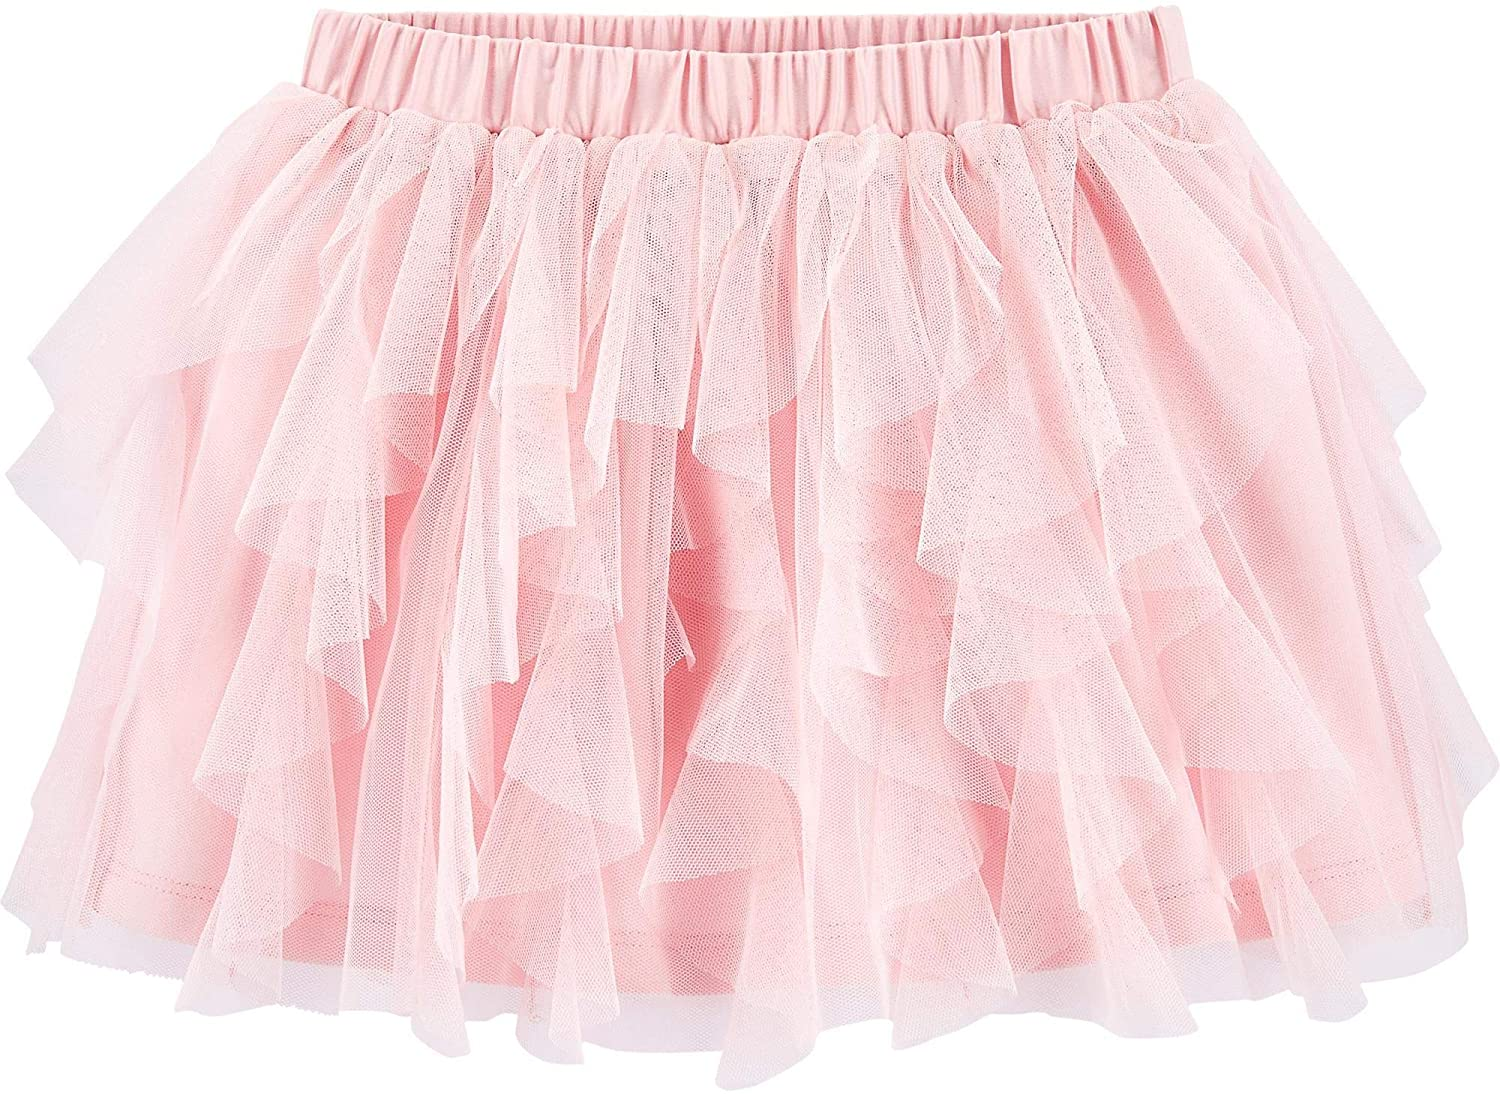 Baby B'Gosh Girls Waterfall-Style Tulle Tutu Pink Skirt with Sateen Covered Elastic Waistband 12 Months